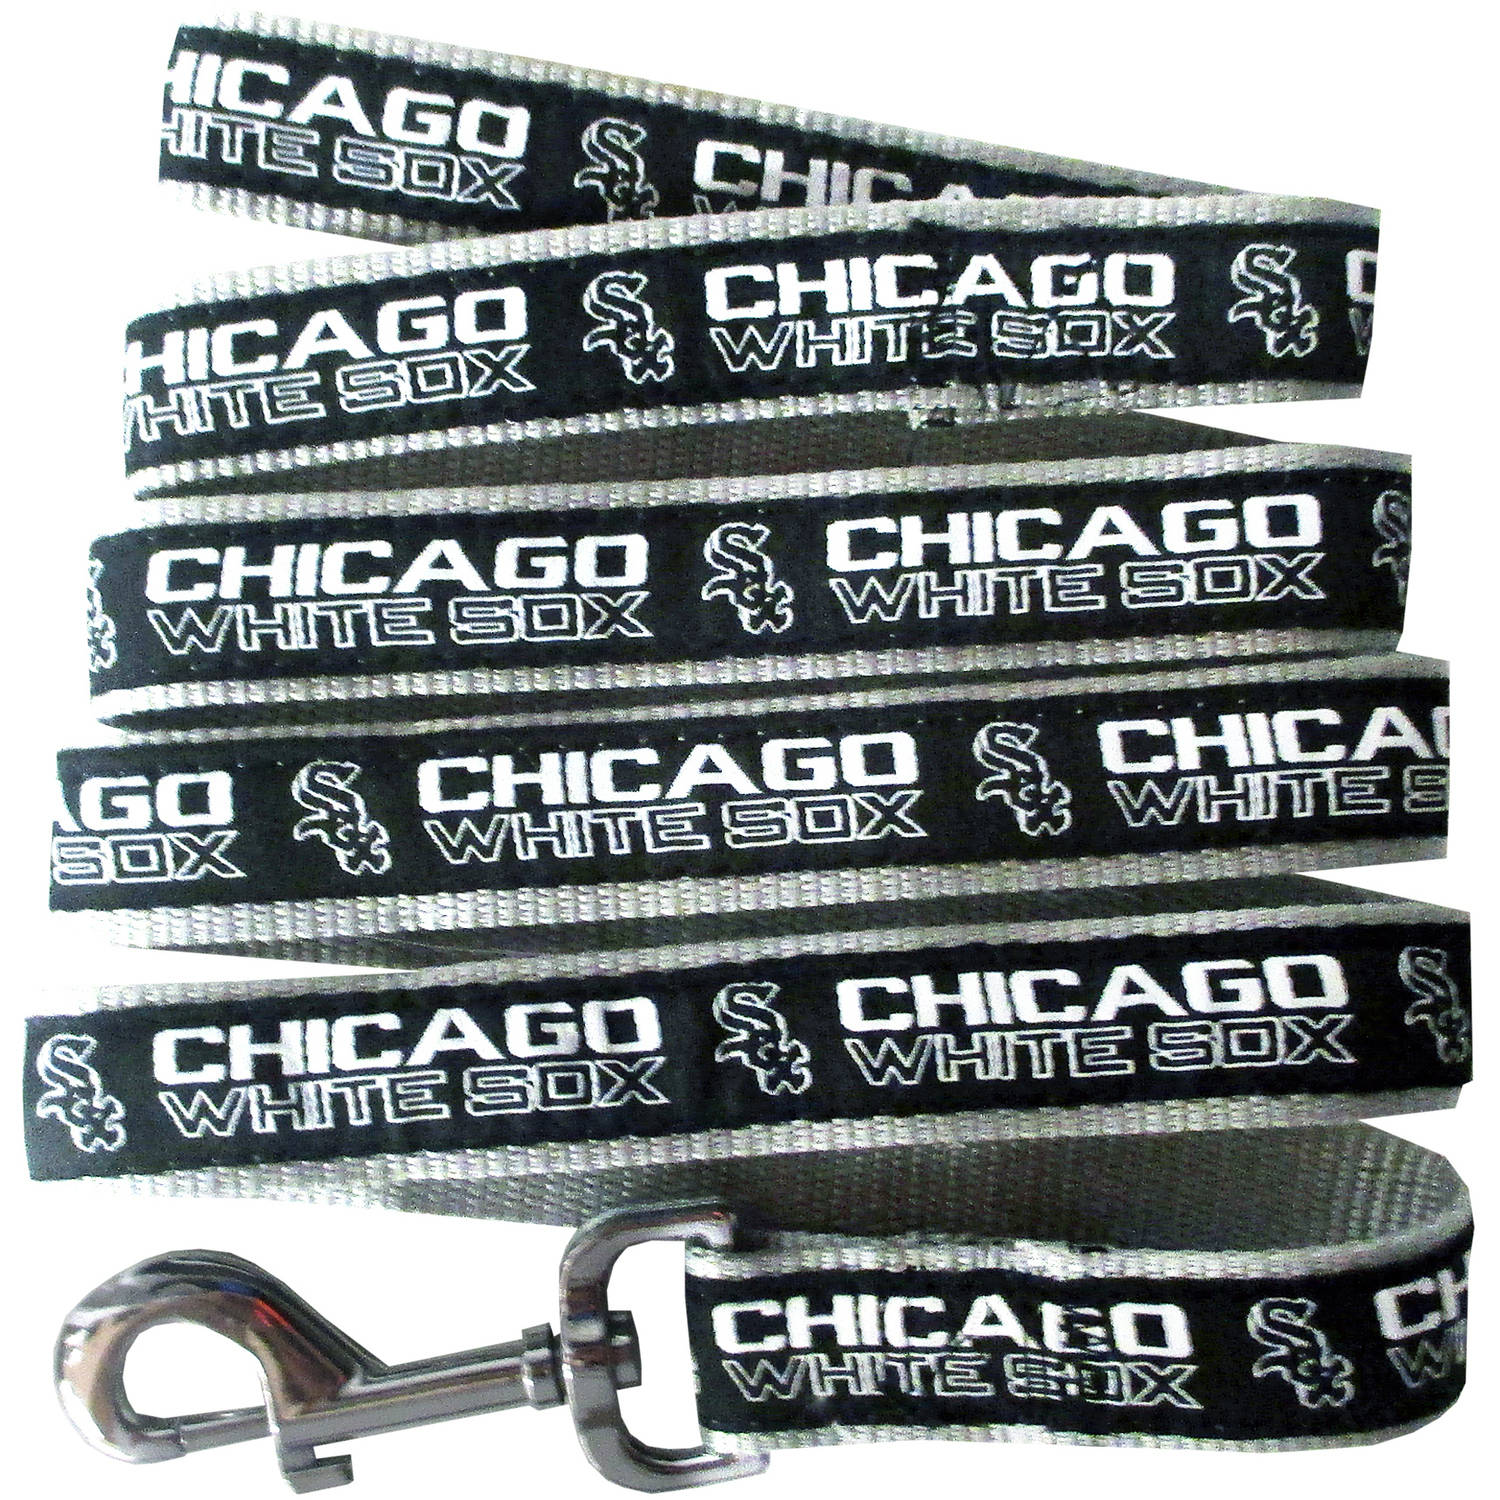 Pets First Chicago White Sox Pet Leash, Small